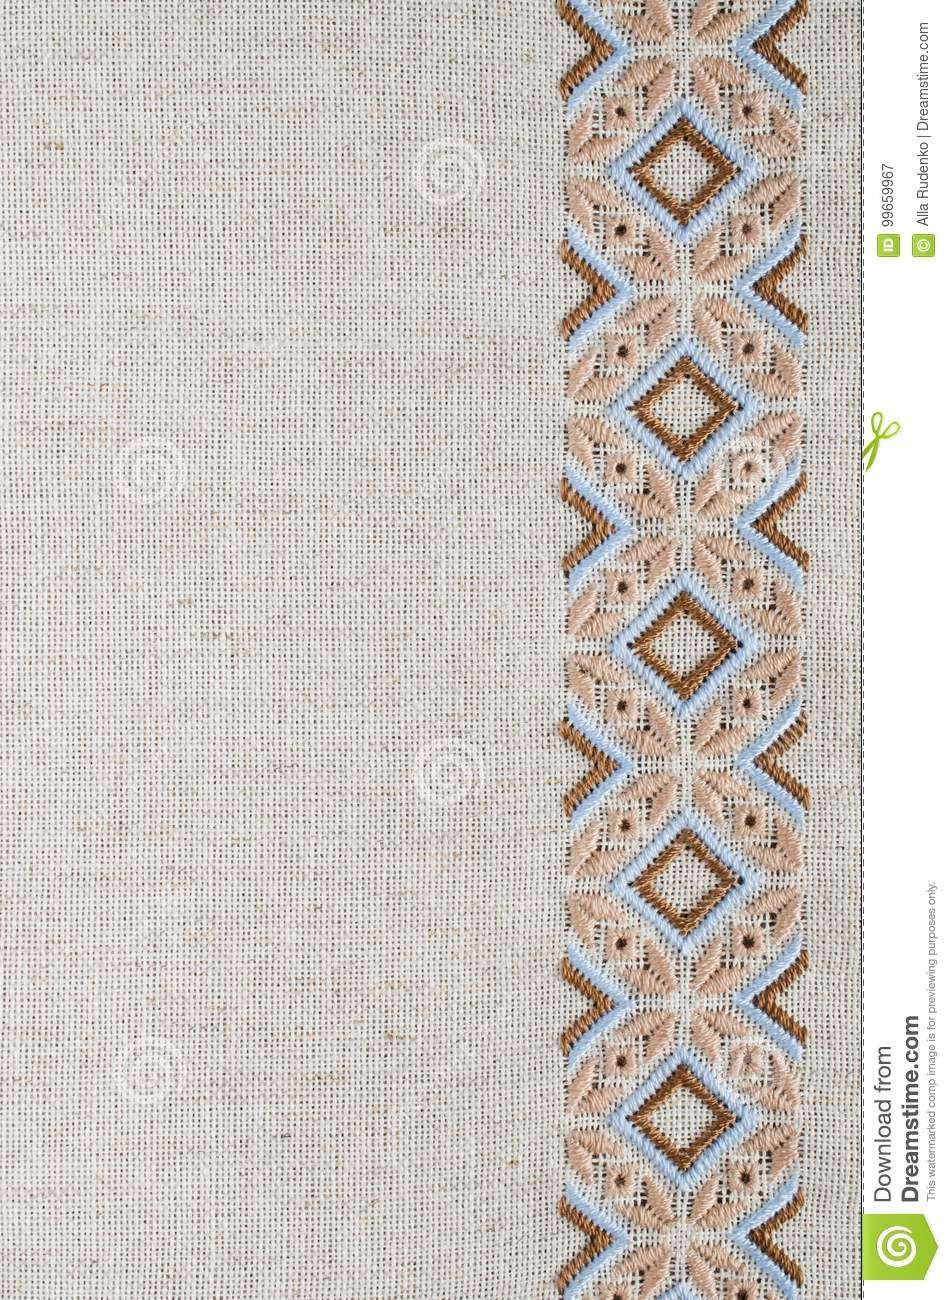 Craft embroidery. Design of ethnic pattern.